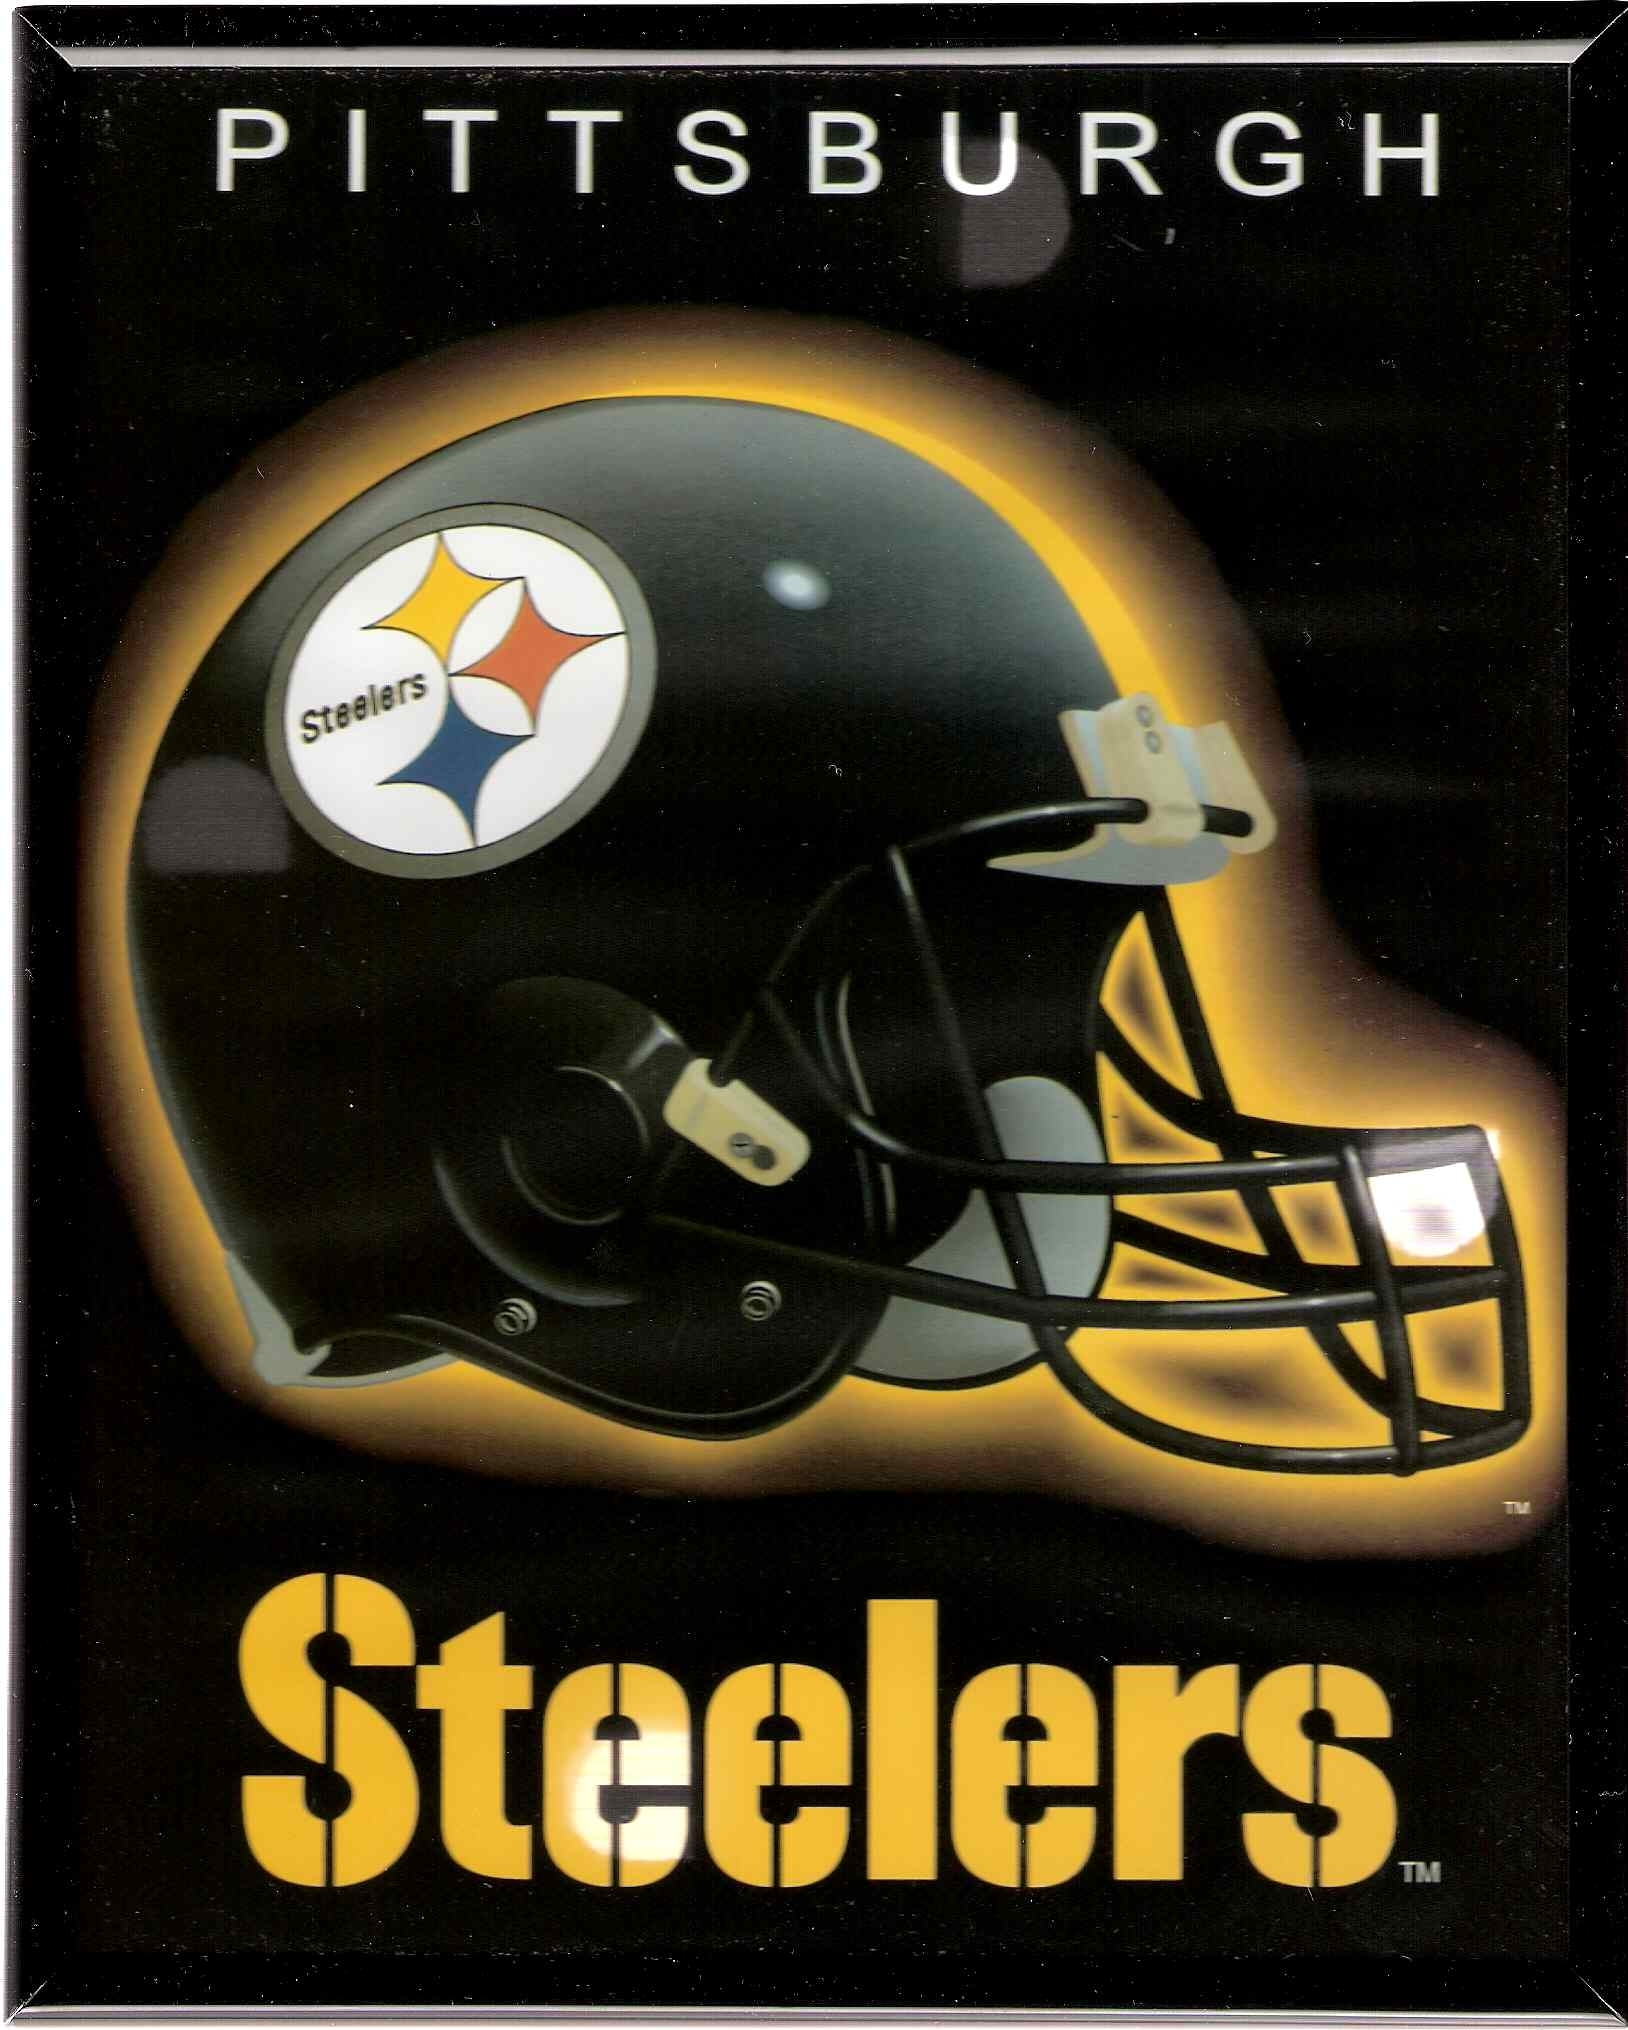 Title : super bowl madness | pittsburgh steelers, steelers symbol and. Dimension : 1628 x 2030. File Type : JPG/JPEG